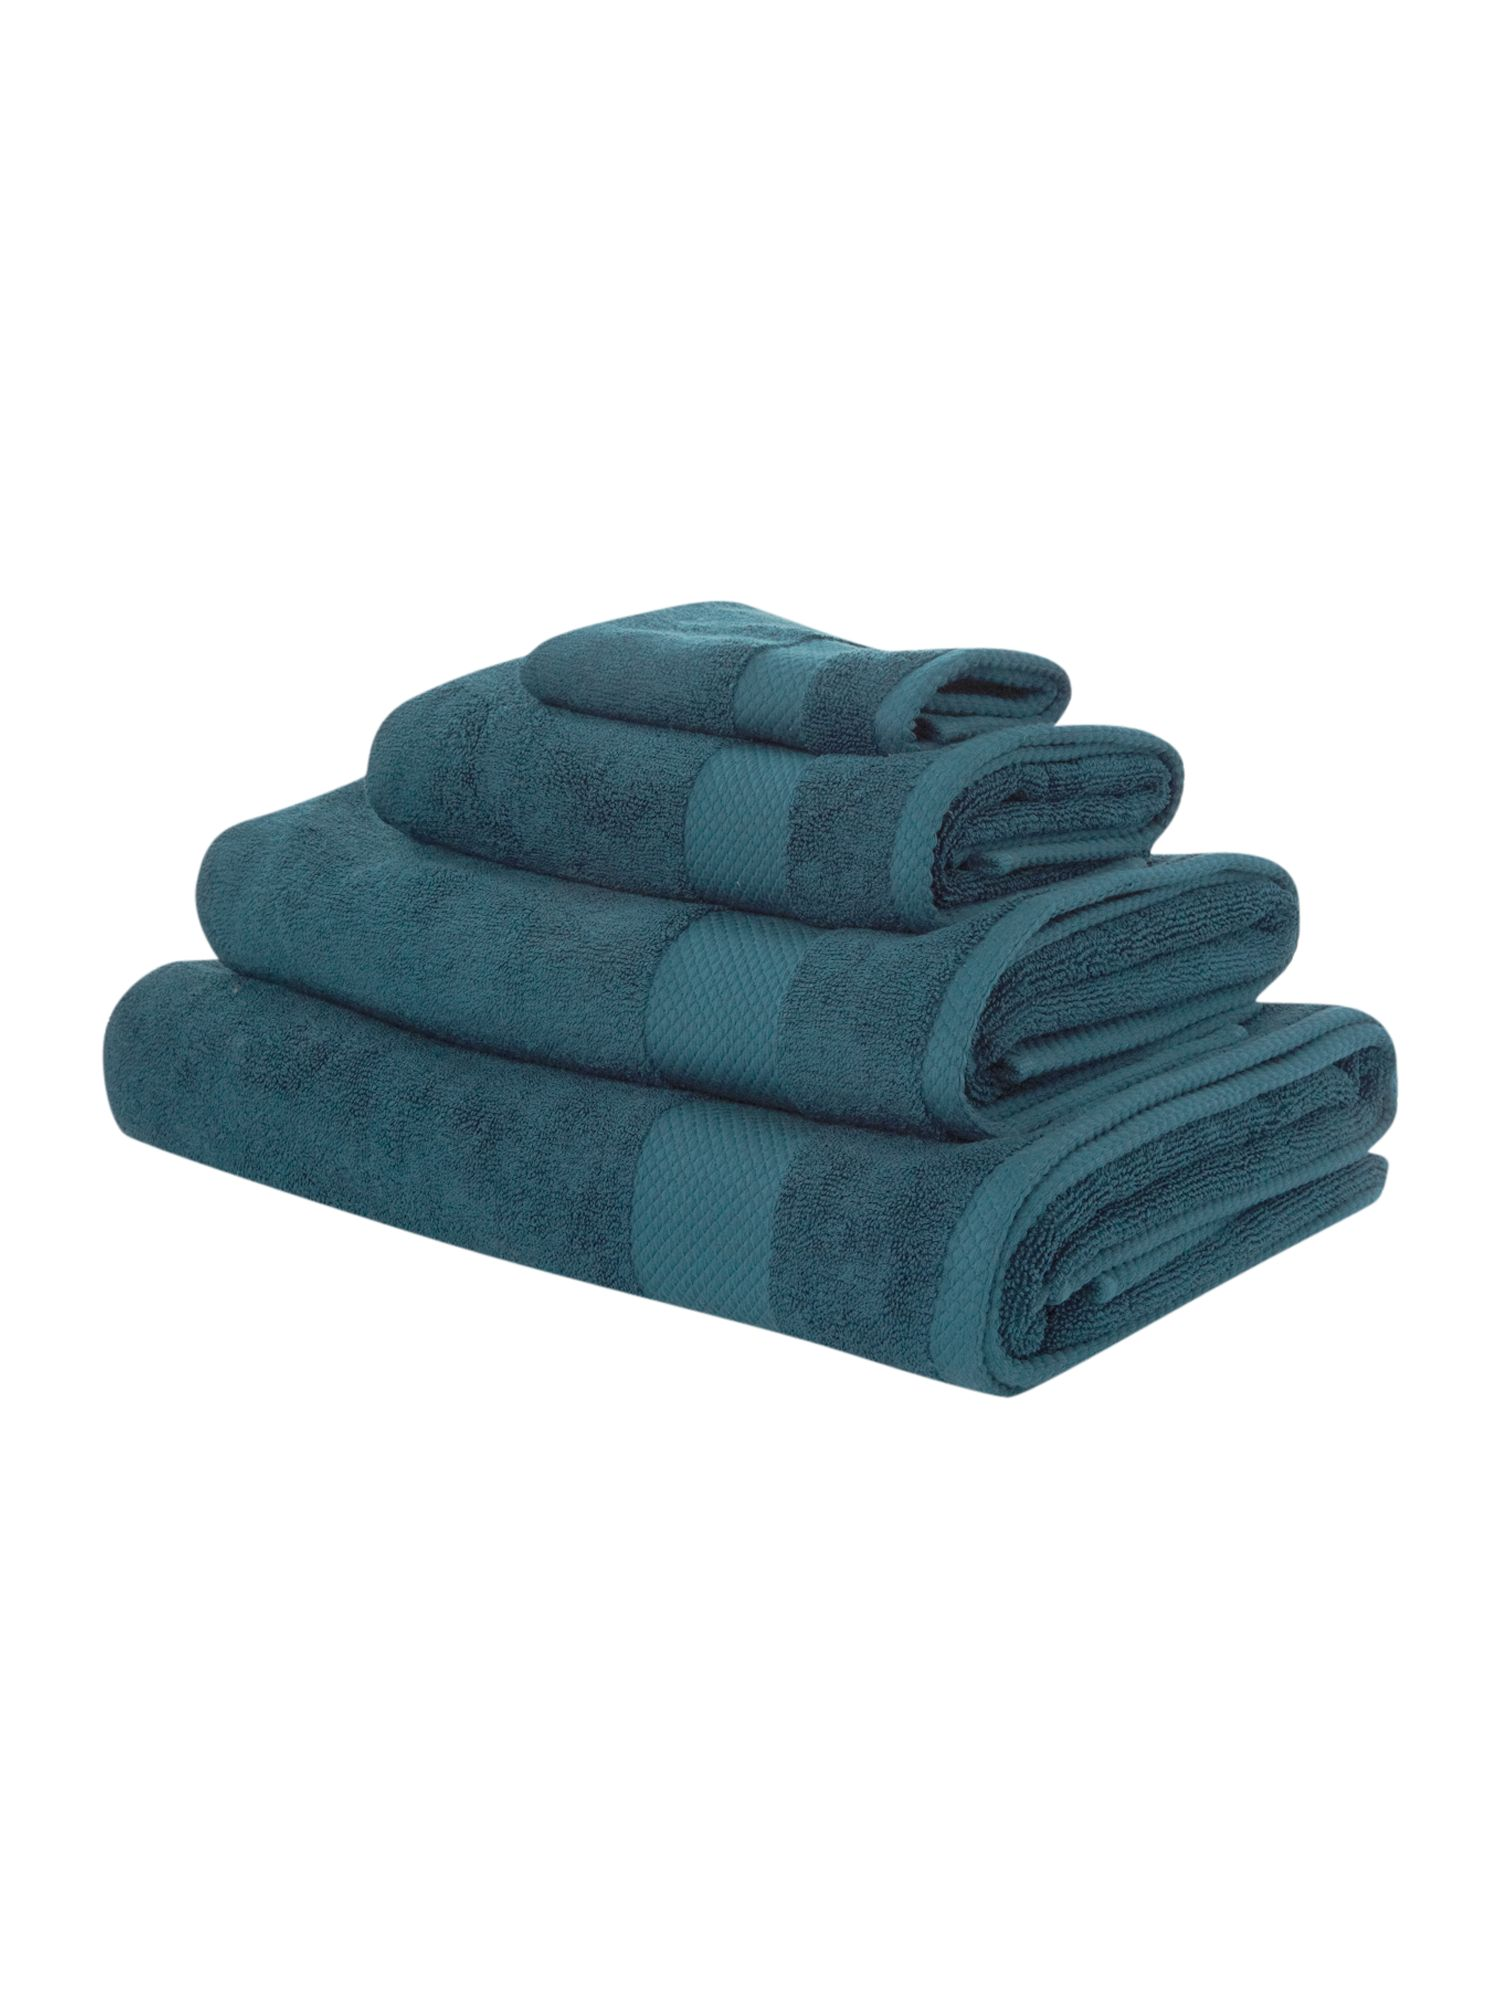 Egyptian cotton towels in cerulean